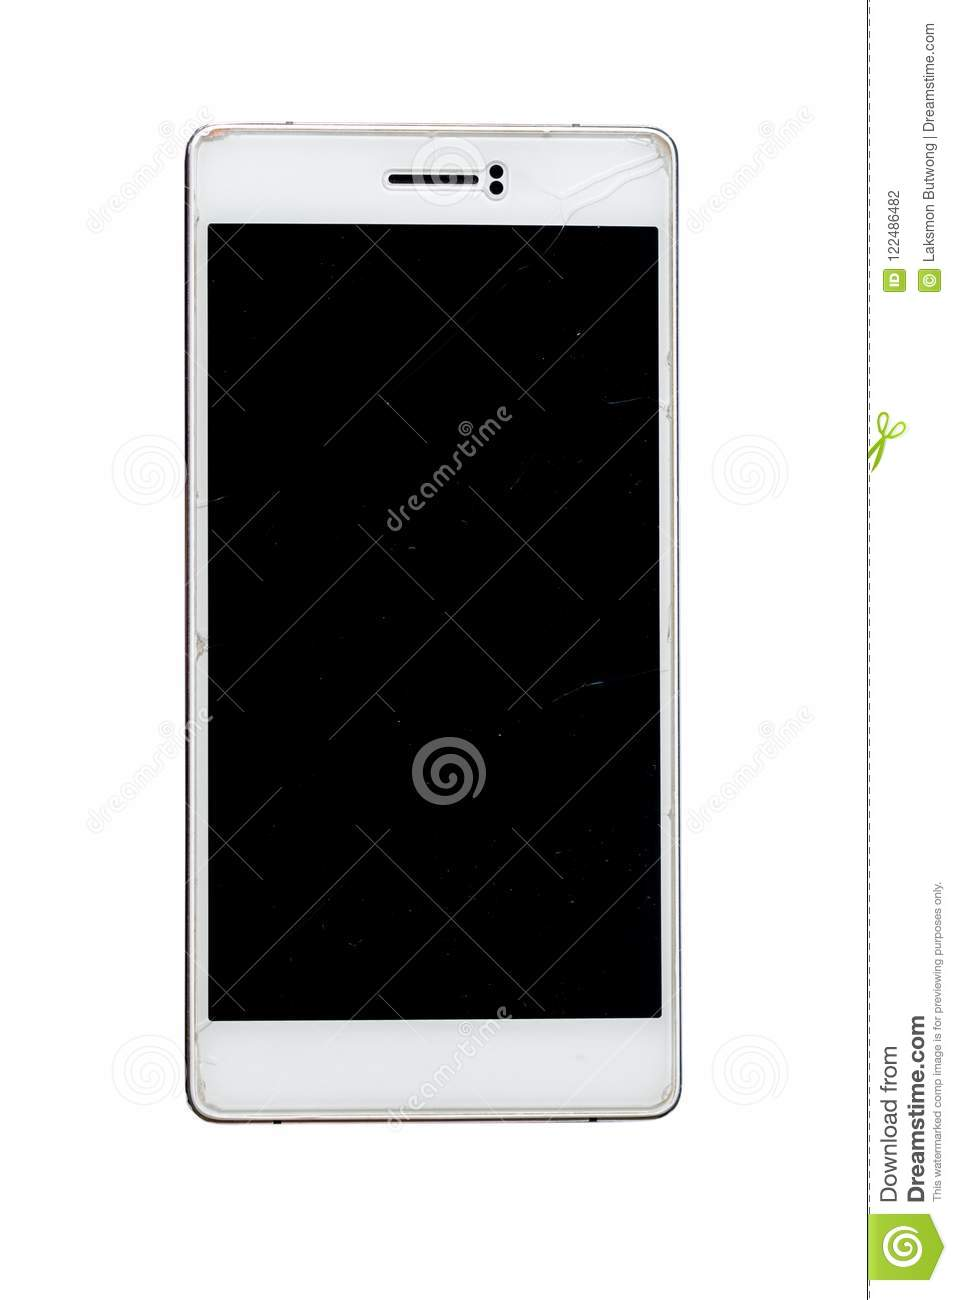 Broken screen of smartphone isolated on white background.